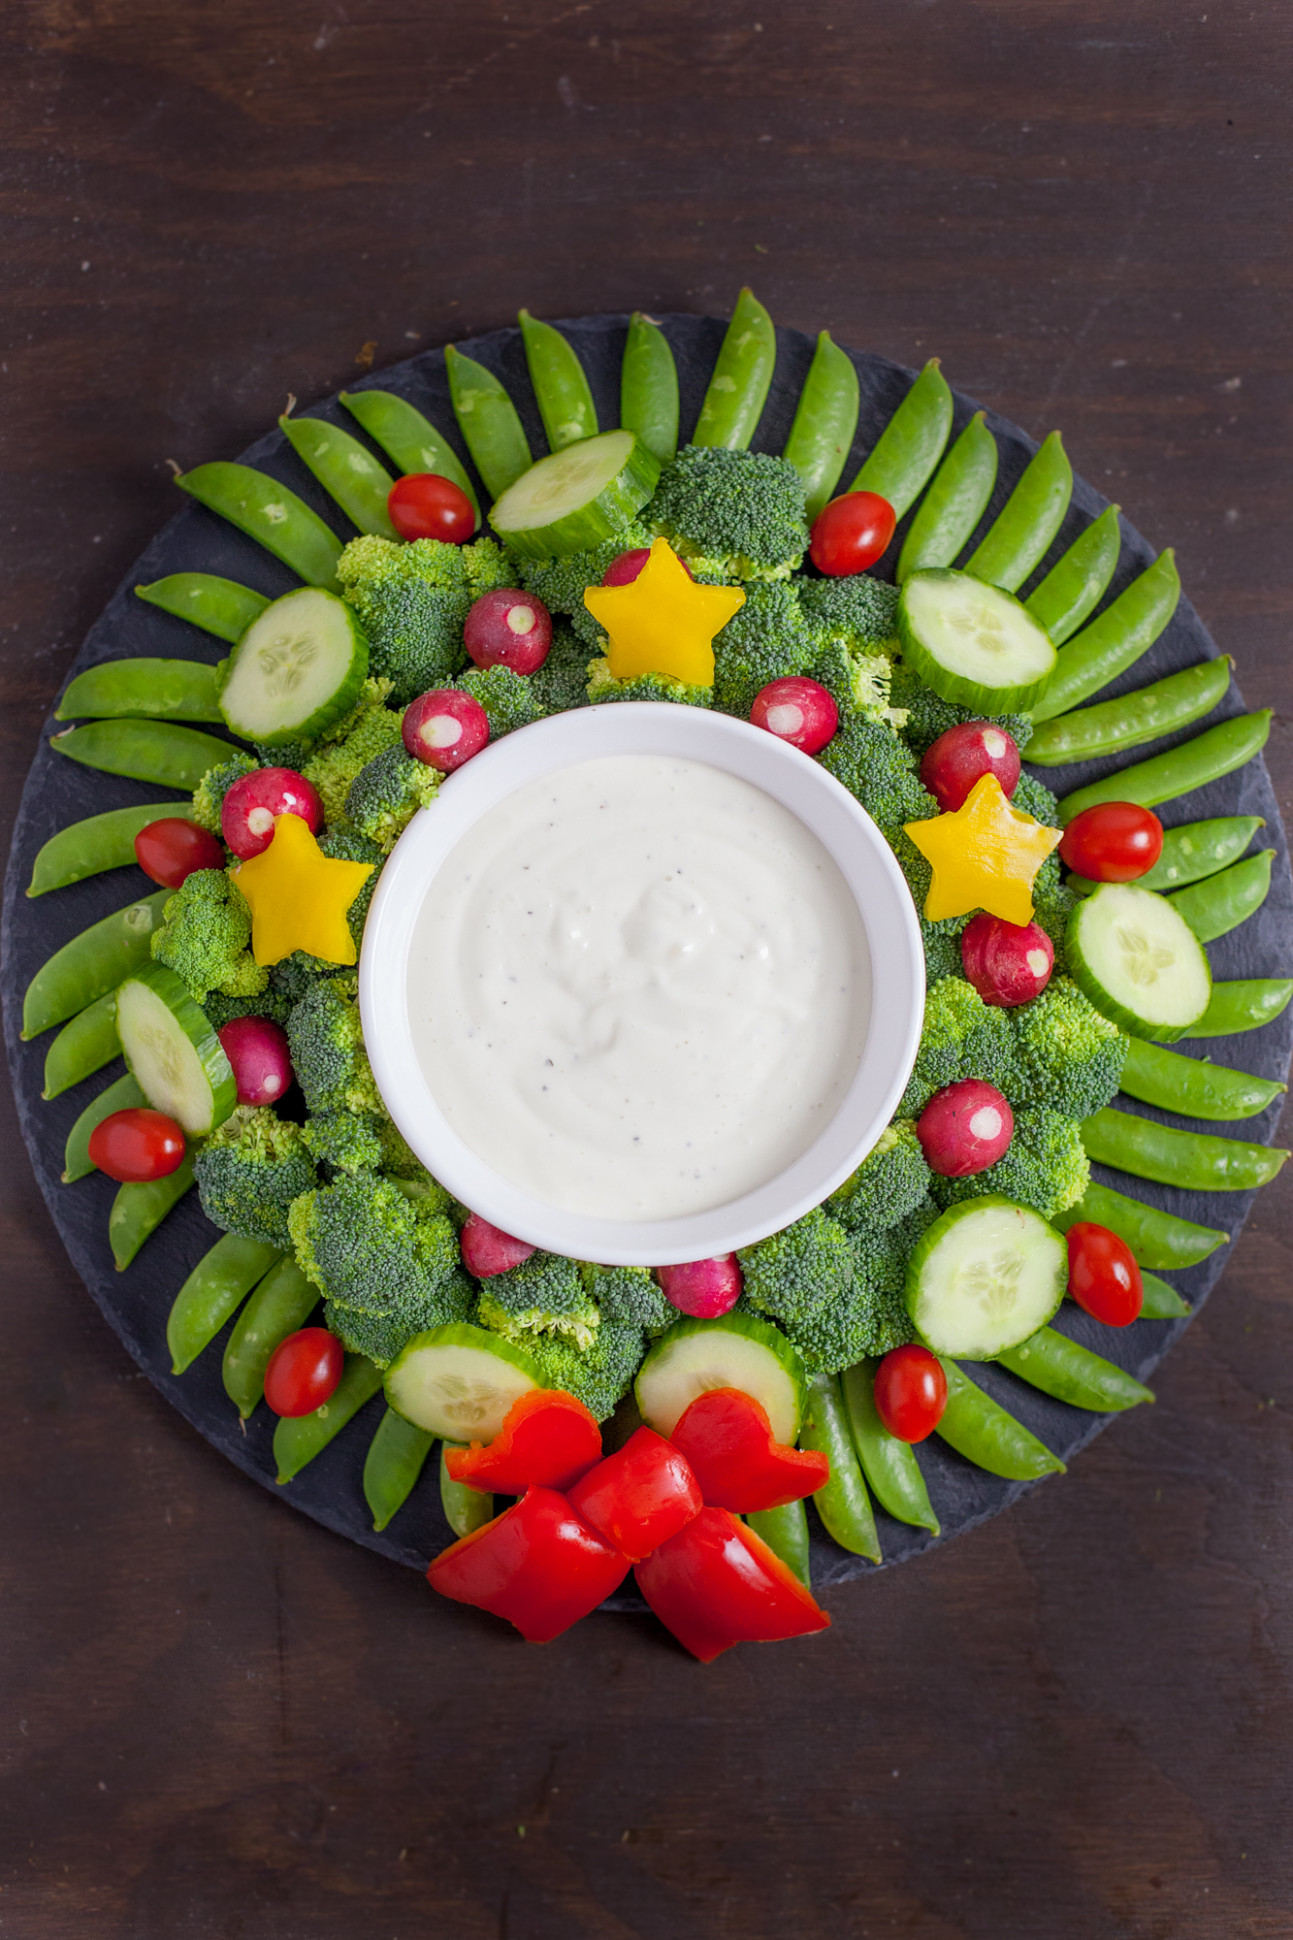 Veggie Wreath Christmas Appetizer - vegetarian recipes for xmas day